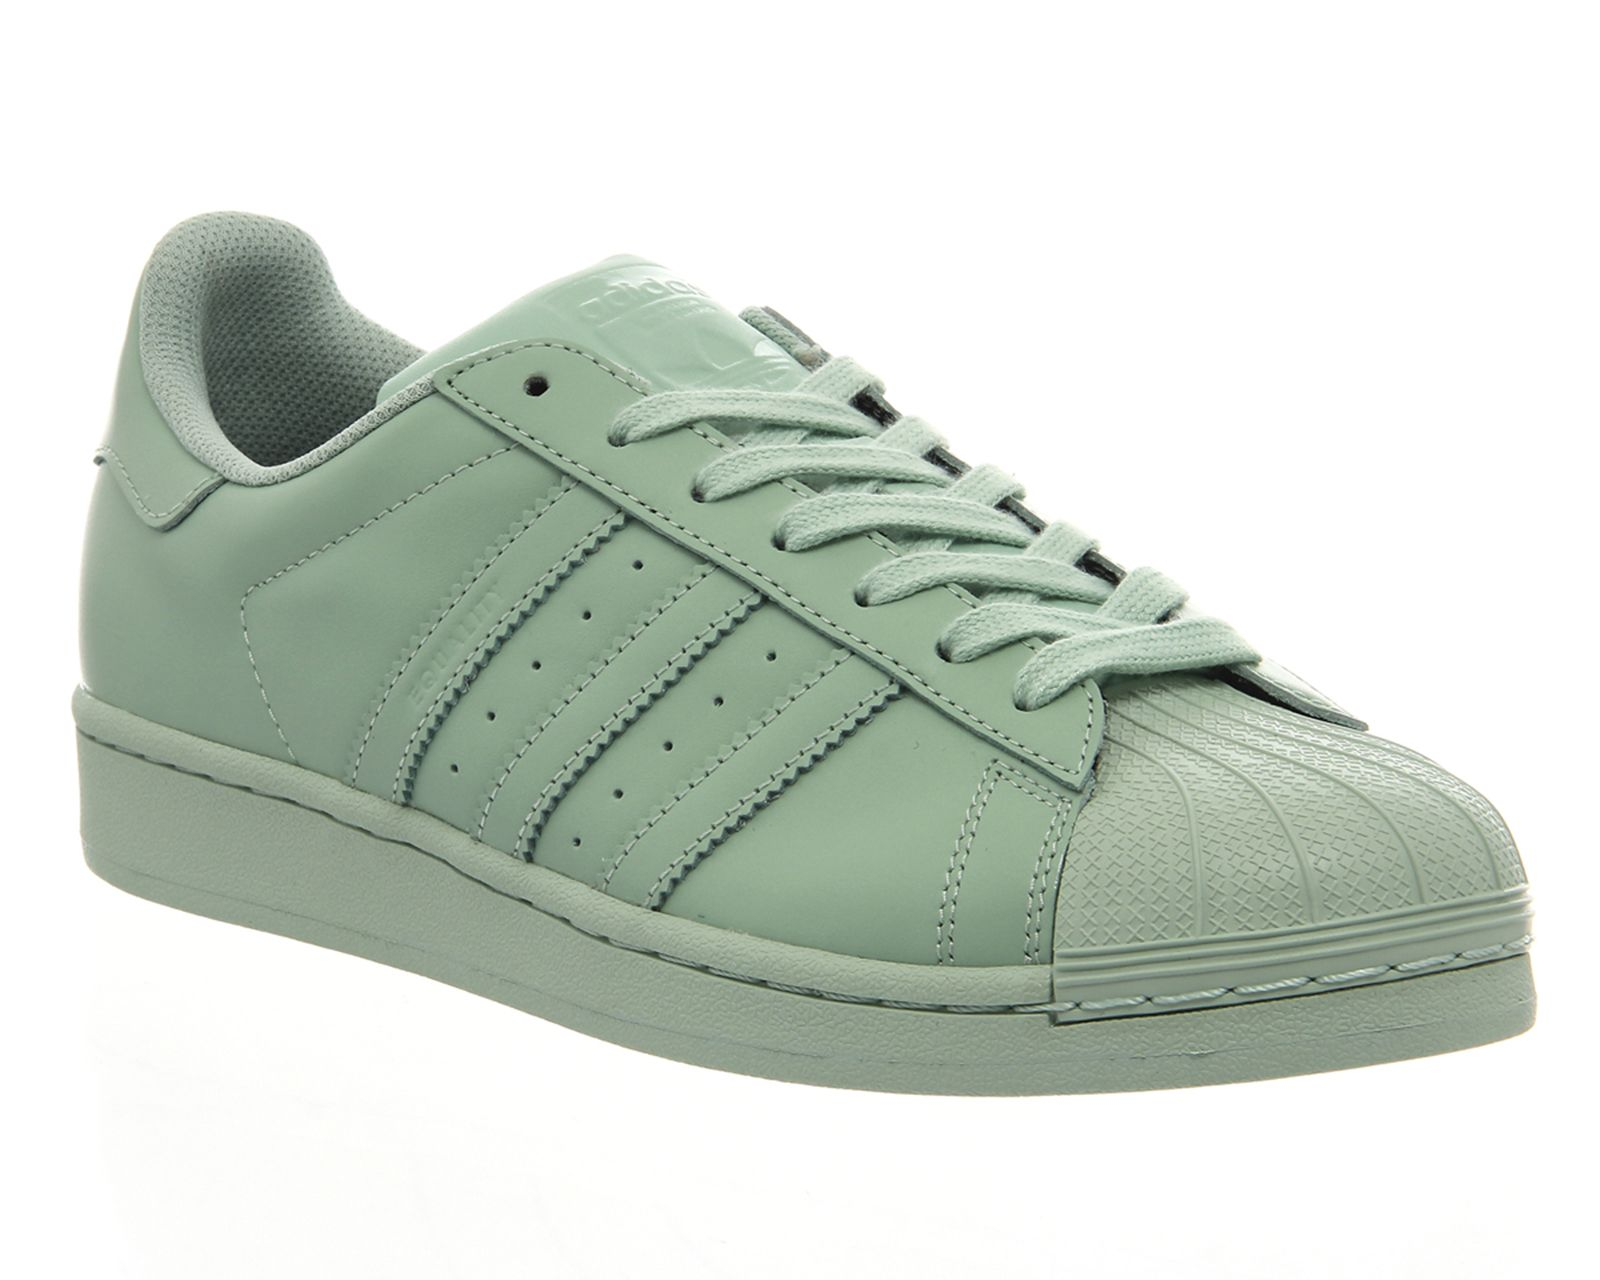 Adidas Superstar 1 Pharrell Supercolor Blush Green - This is an absolute  MUST-HAVE for me. Just hope that all my God\u0027s hear my plea and send them to  South ...